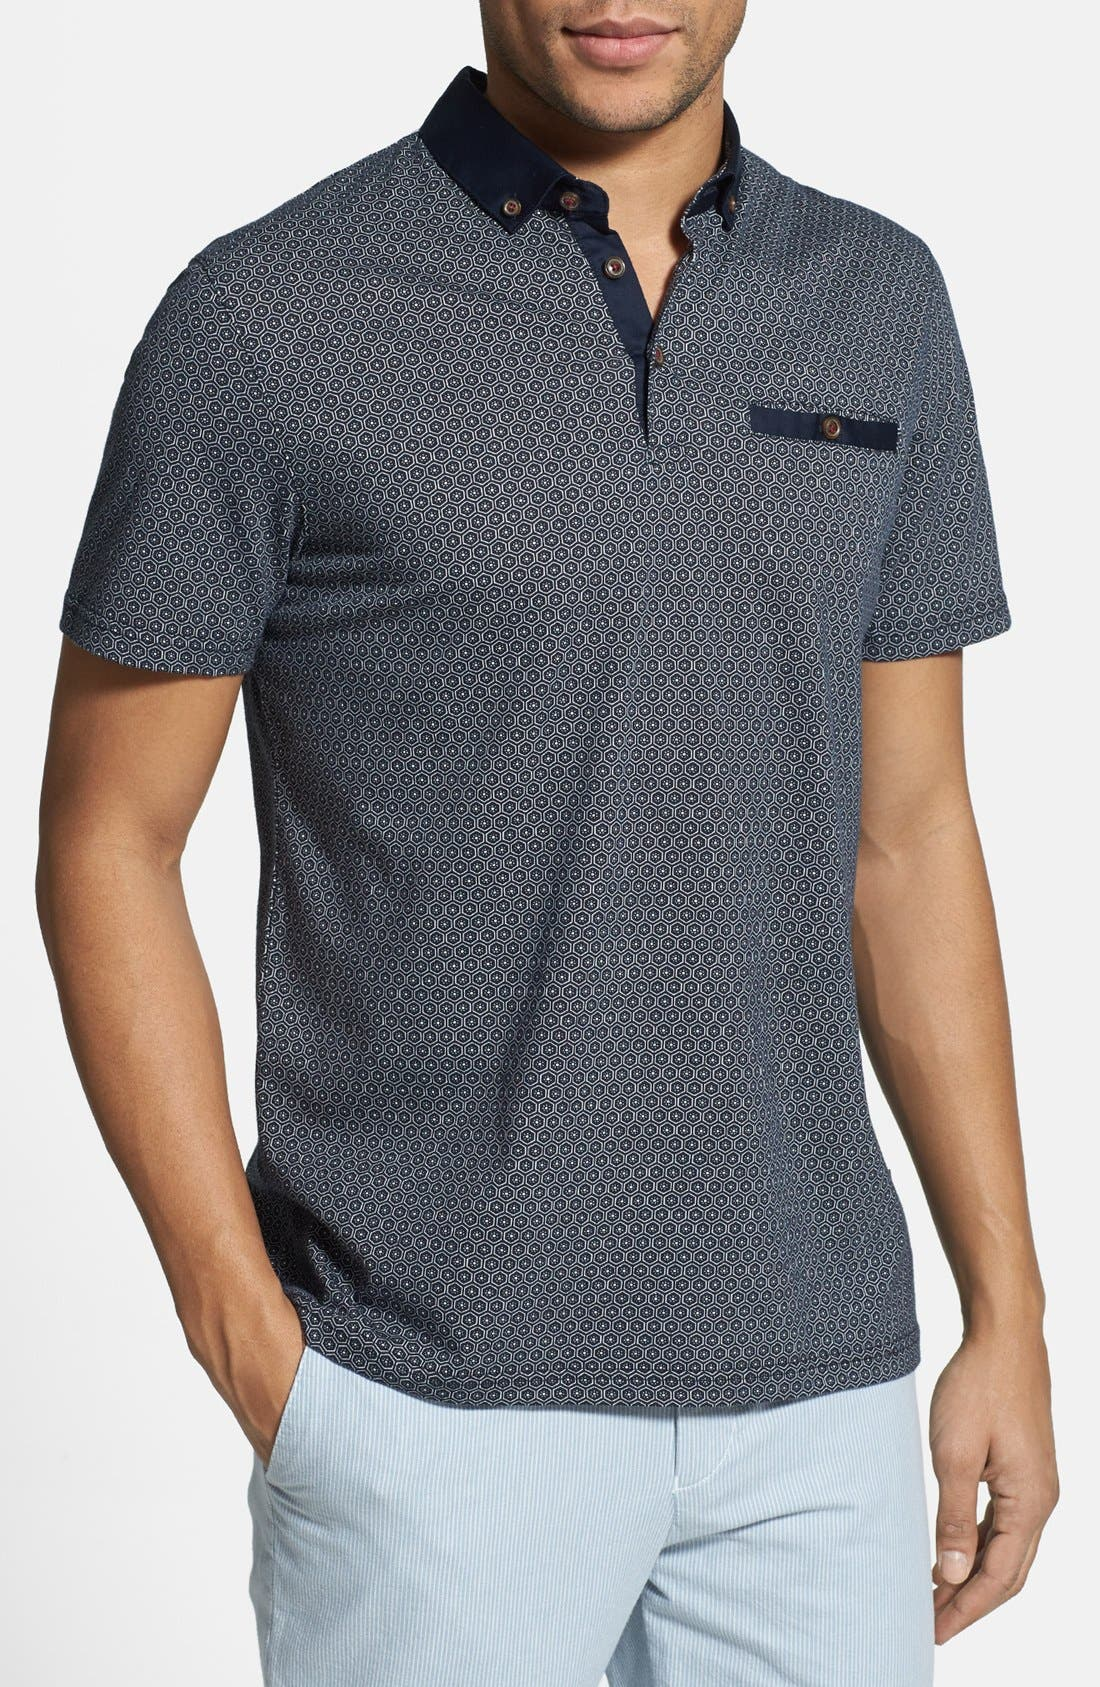 Main Image - Ted Baker London 'Elwhite' Graphic Print Polo